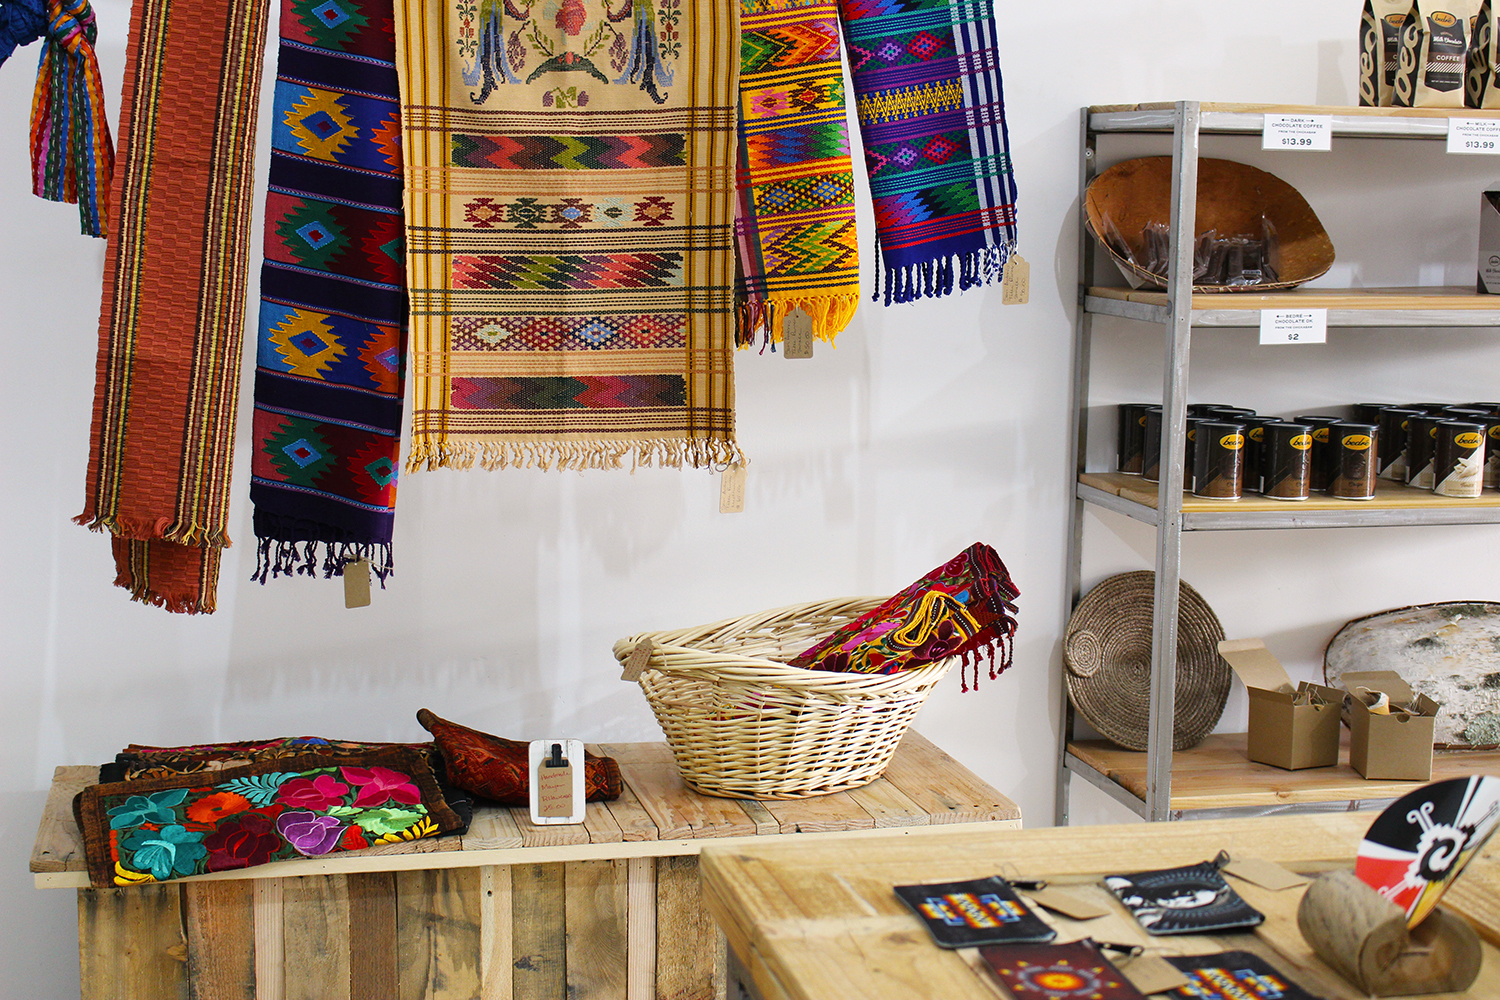 The market offers a wide variety of products, including human and dog accessories woven by the Mayans.